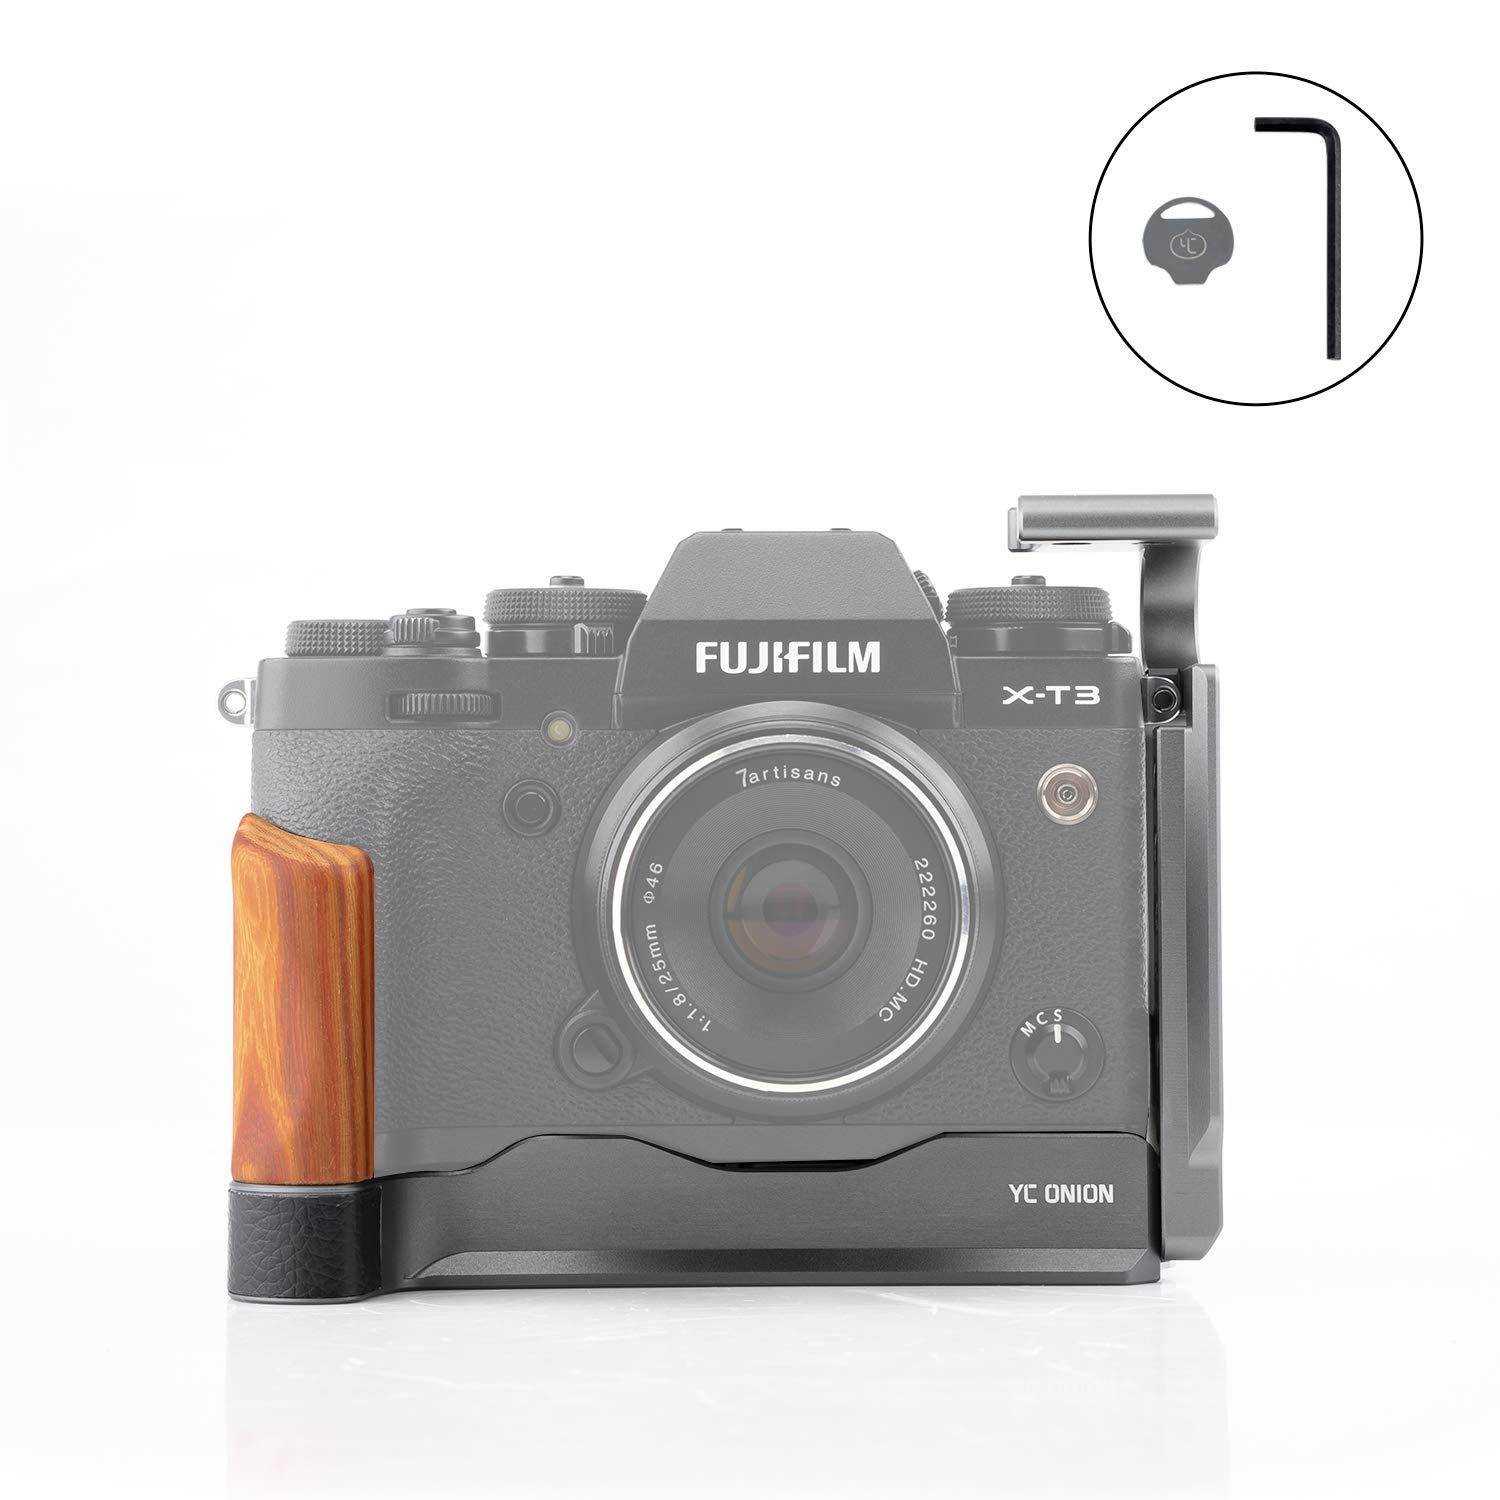 YC Onion Camera L Bracket L-Shape Plate L Half Cage for Fujifilm X-T3 with Arca Swiss Plate Quick Release Pearwood Grip Cold Shoe Hex Wrench Y-Coin Matte Silver